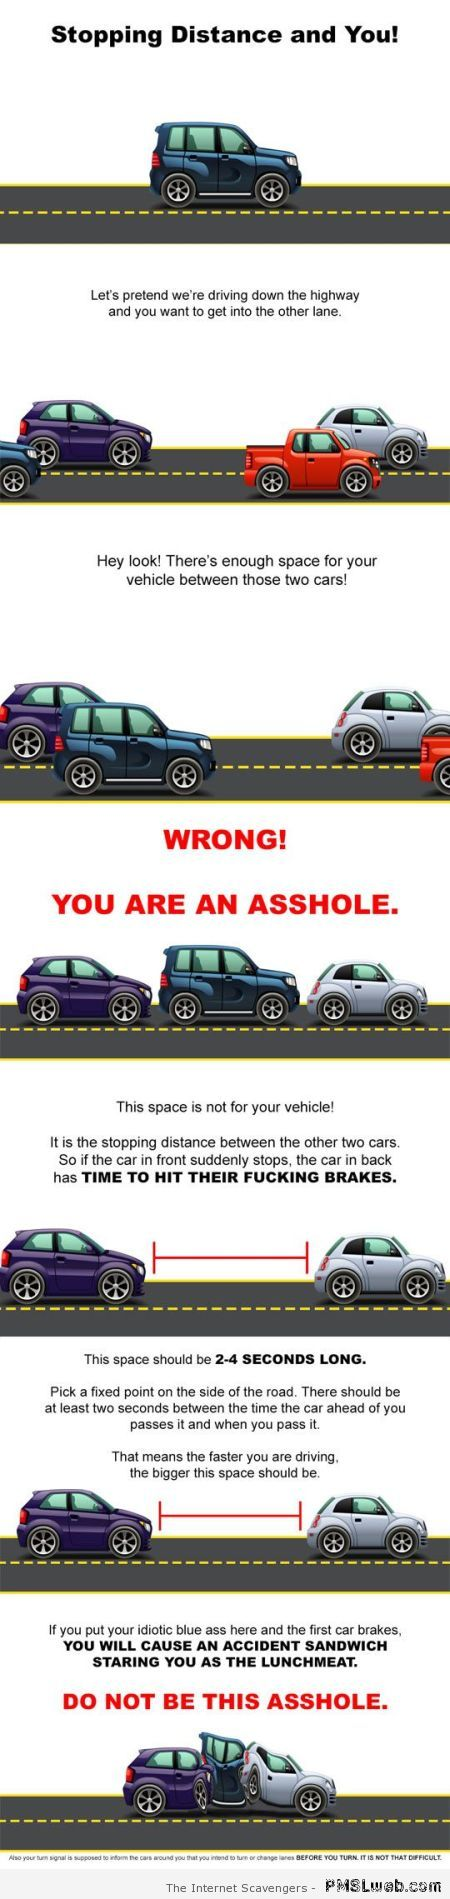 Stopping distance and you at PMSLweb.com